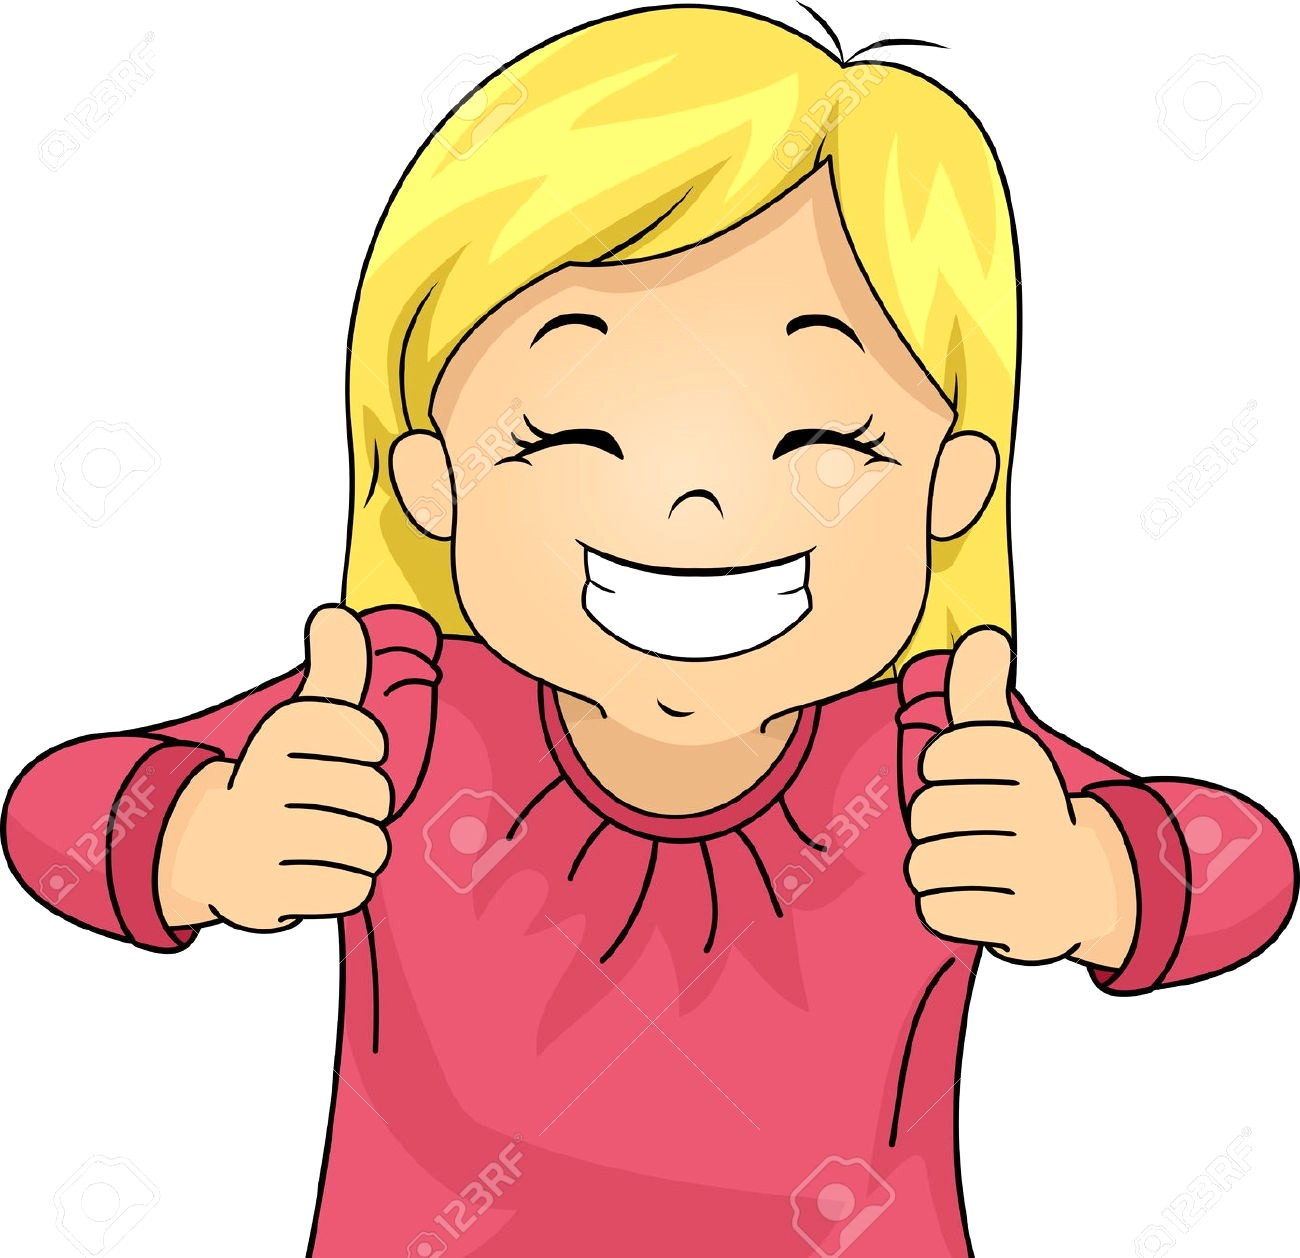 image black and white stock Smiling clipart. Girl station .